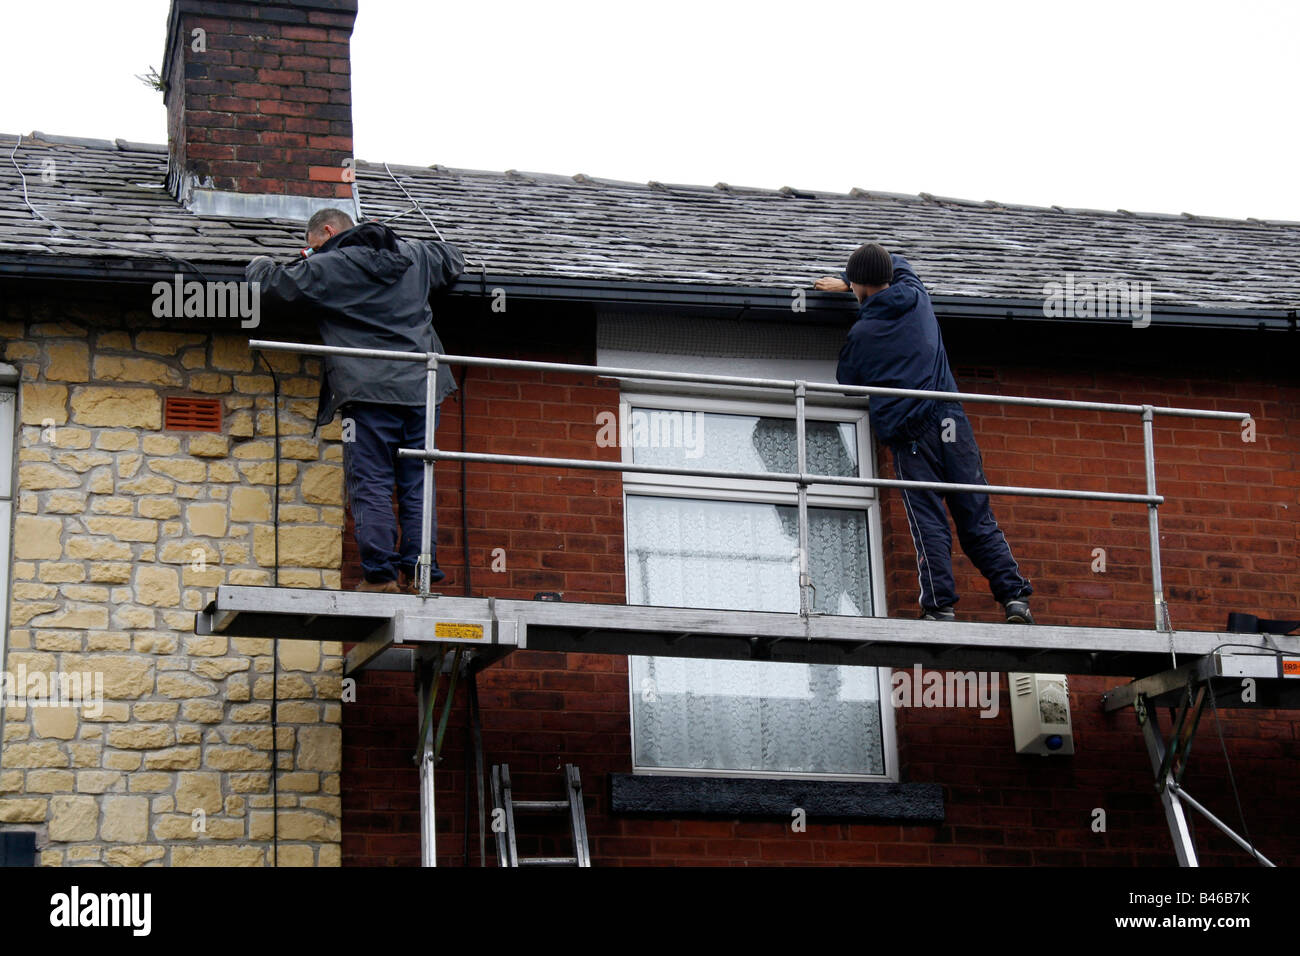 Upvc Roof Stock Photos Amp Upvc Roof Stock Images Alamy